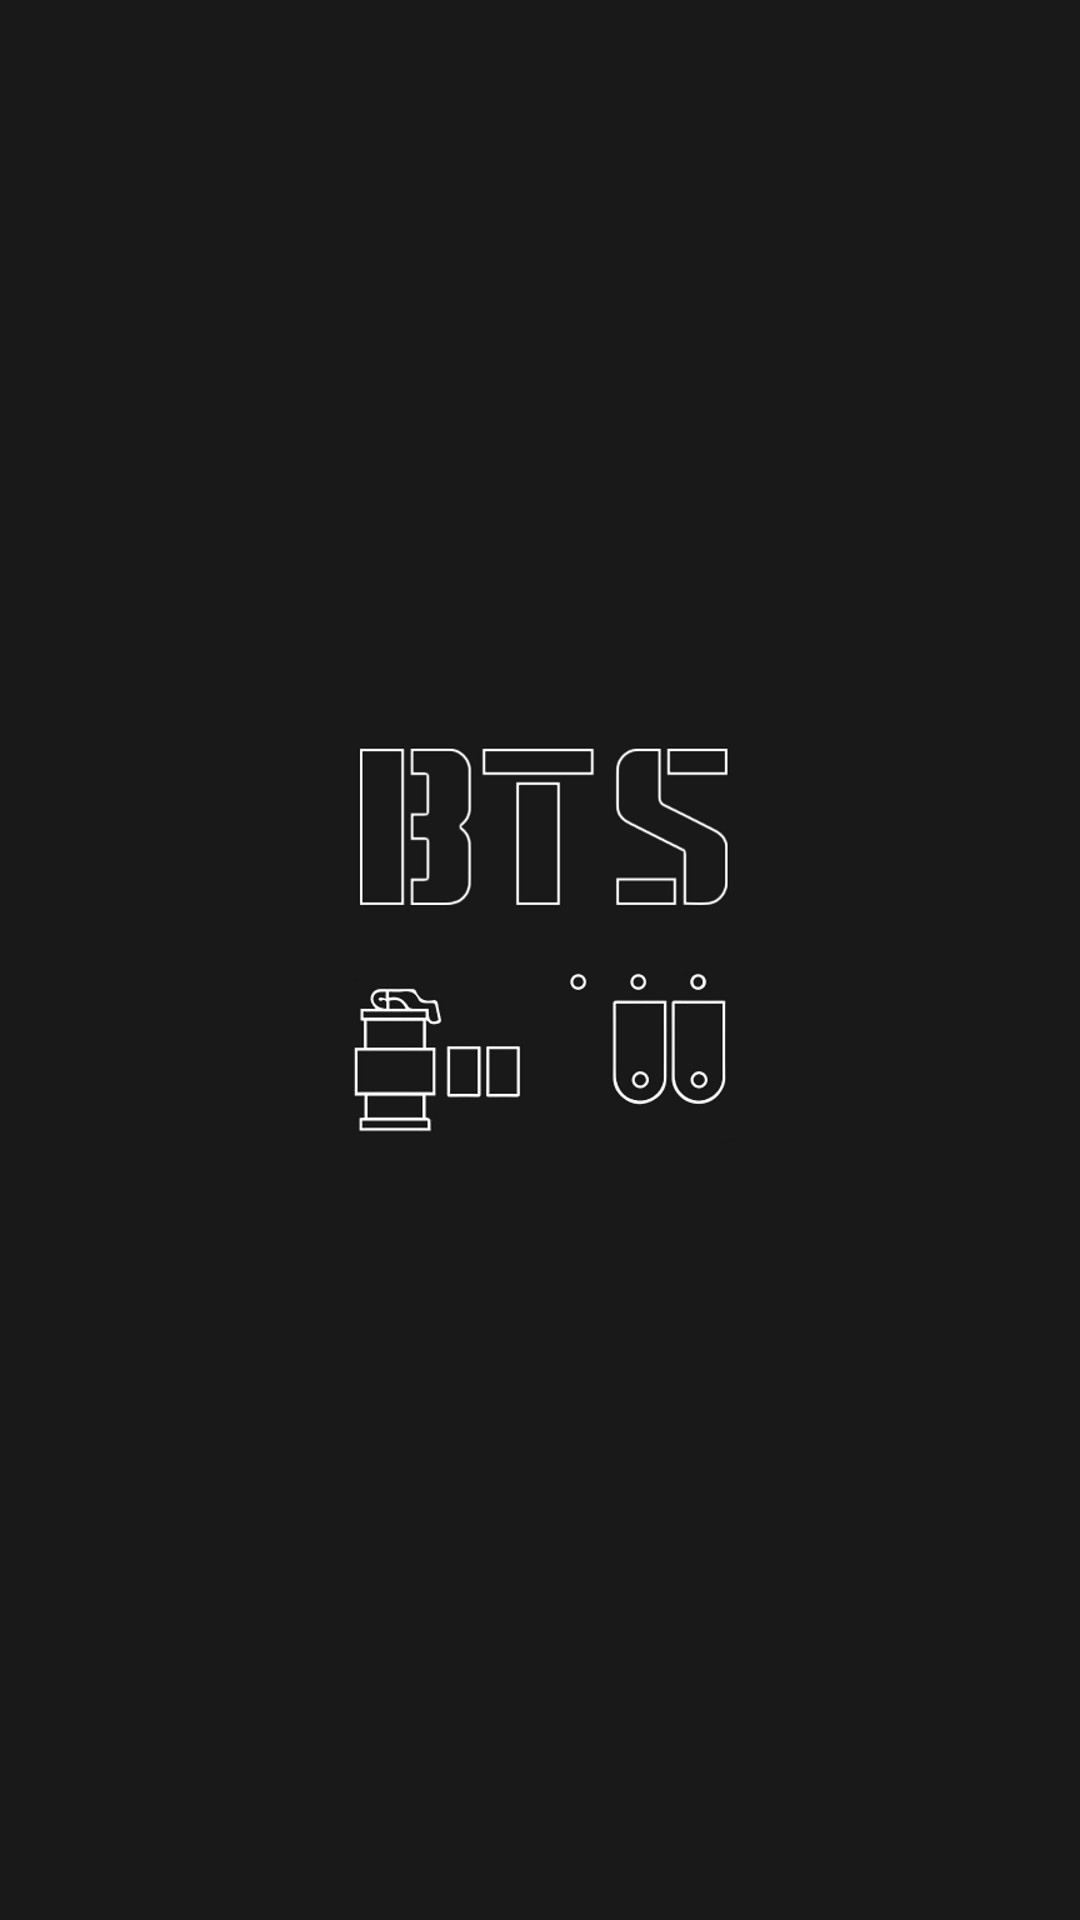 Unduh 47 Wallpaper Black Bts HD Paling Keren